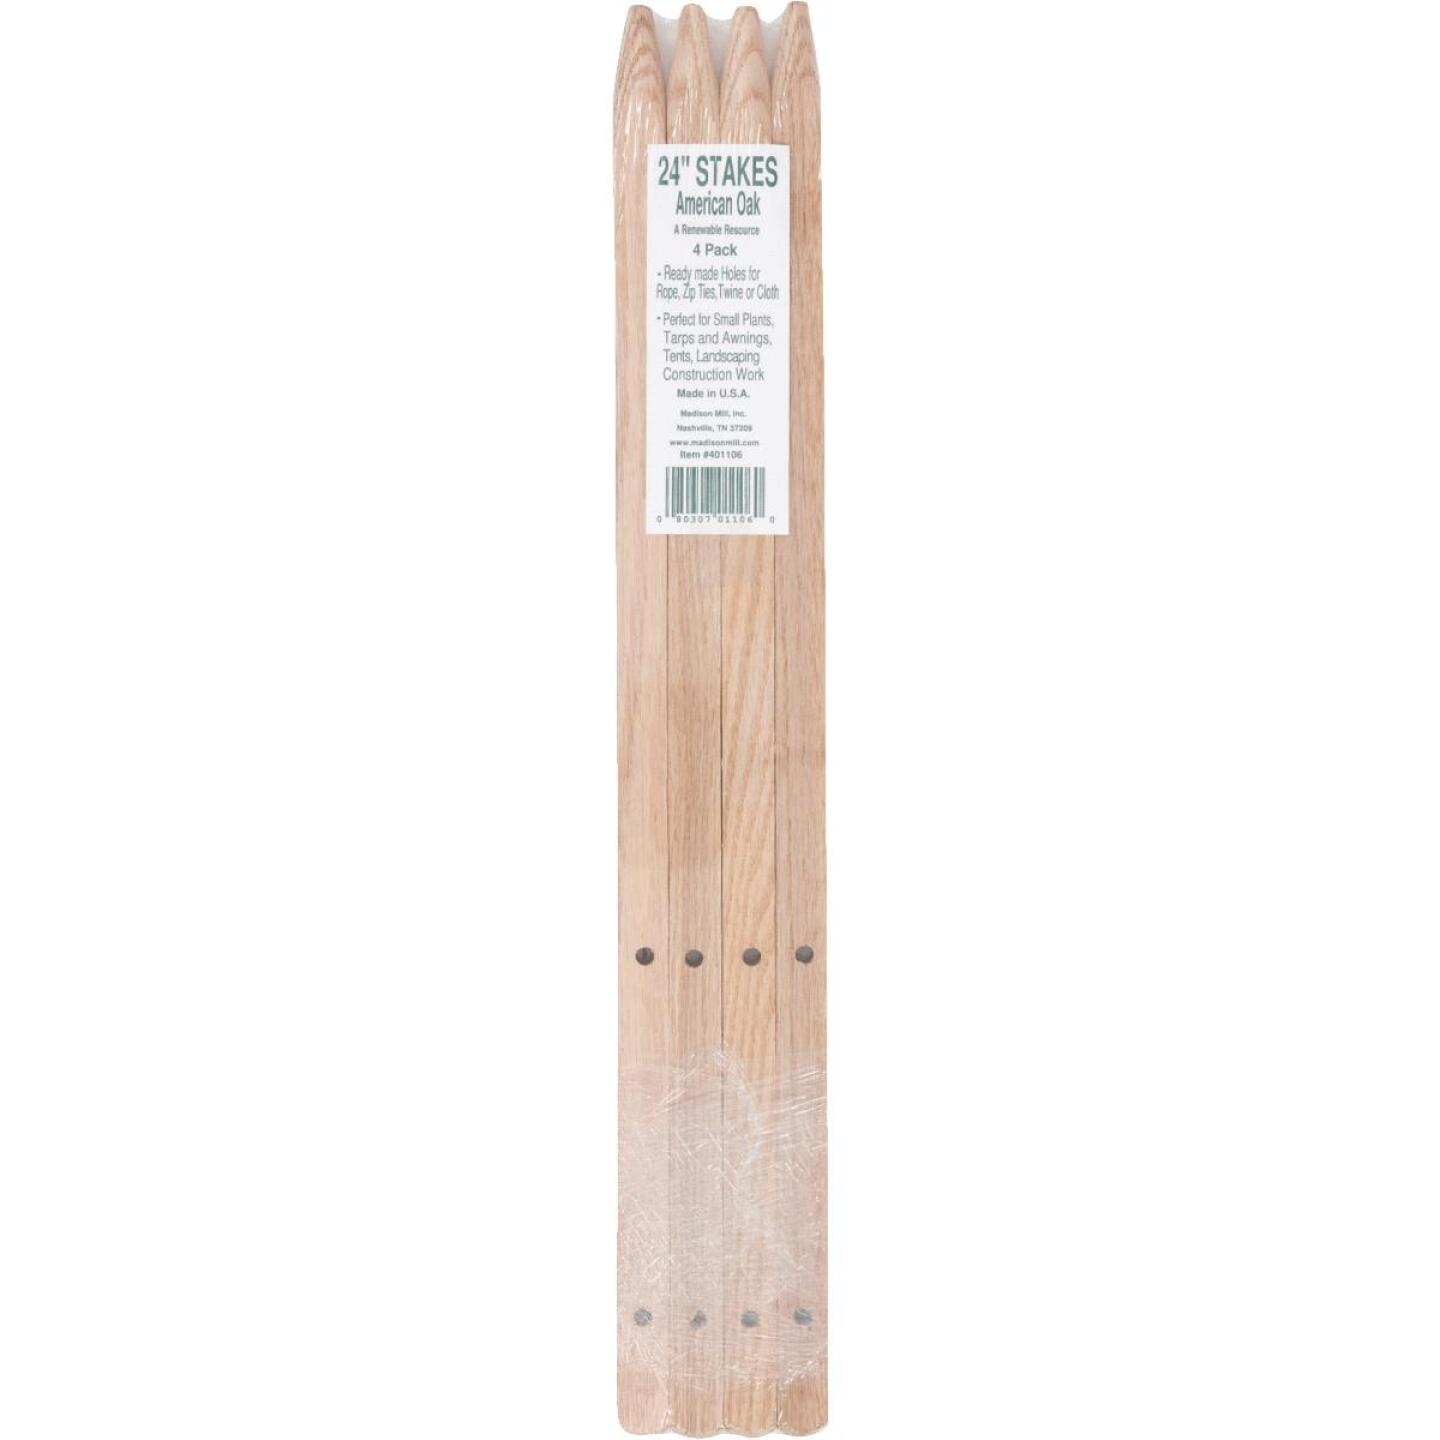 Madison Mill 24 In. Oak Wood Plant Stake (4-Pack) Image 2